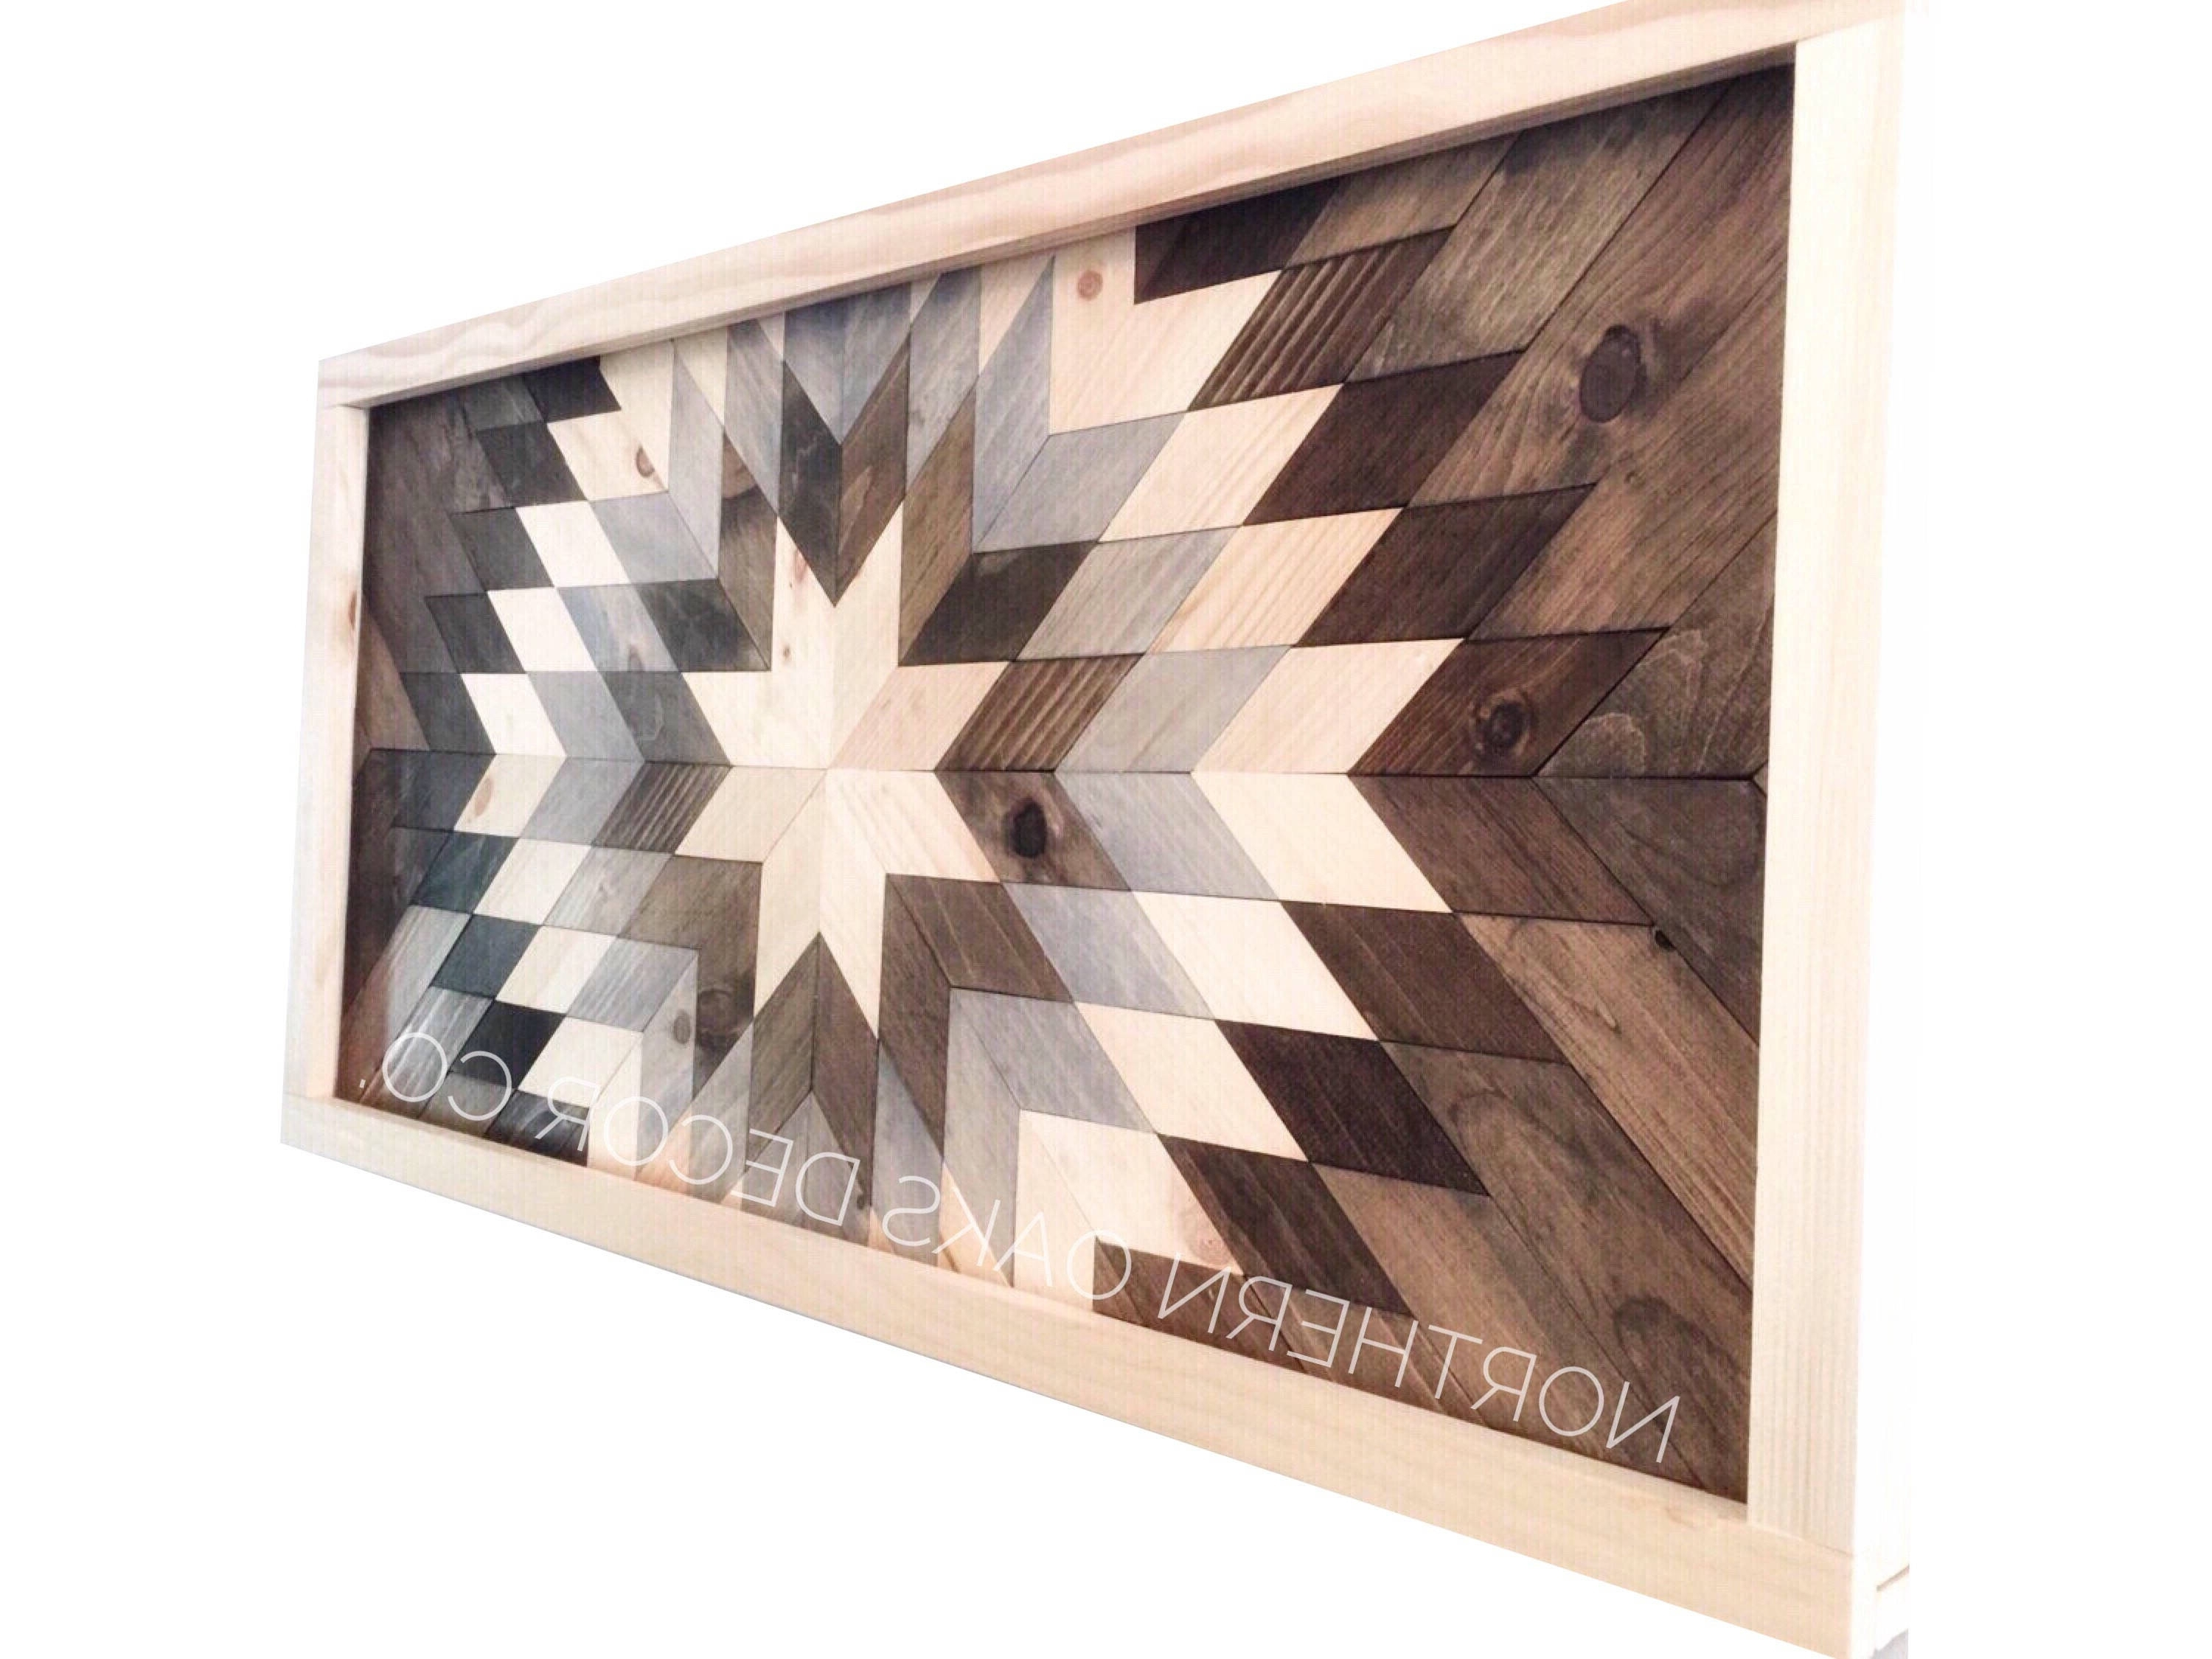 Best And Newest Reclaimed Wood Wall Art – Sunburst In Gray – Dark Frame Pertaining To Dark Wood Wall Art (View 1 of 15)